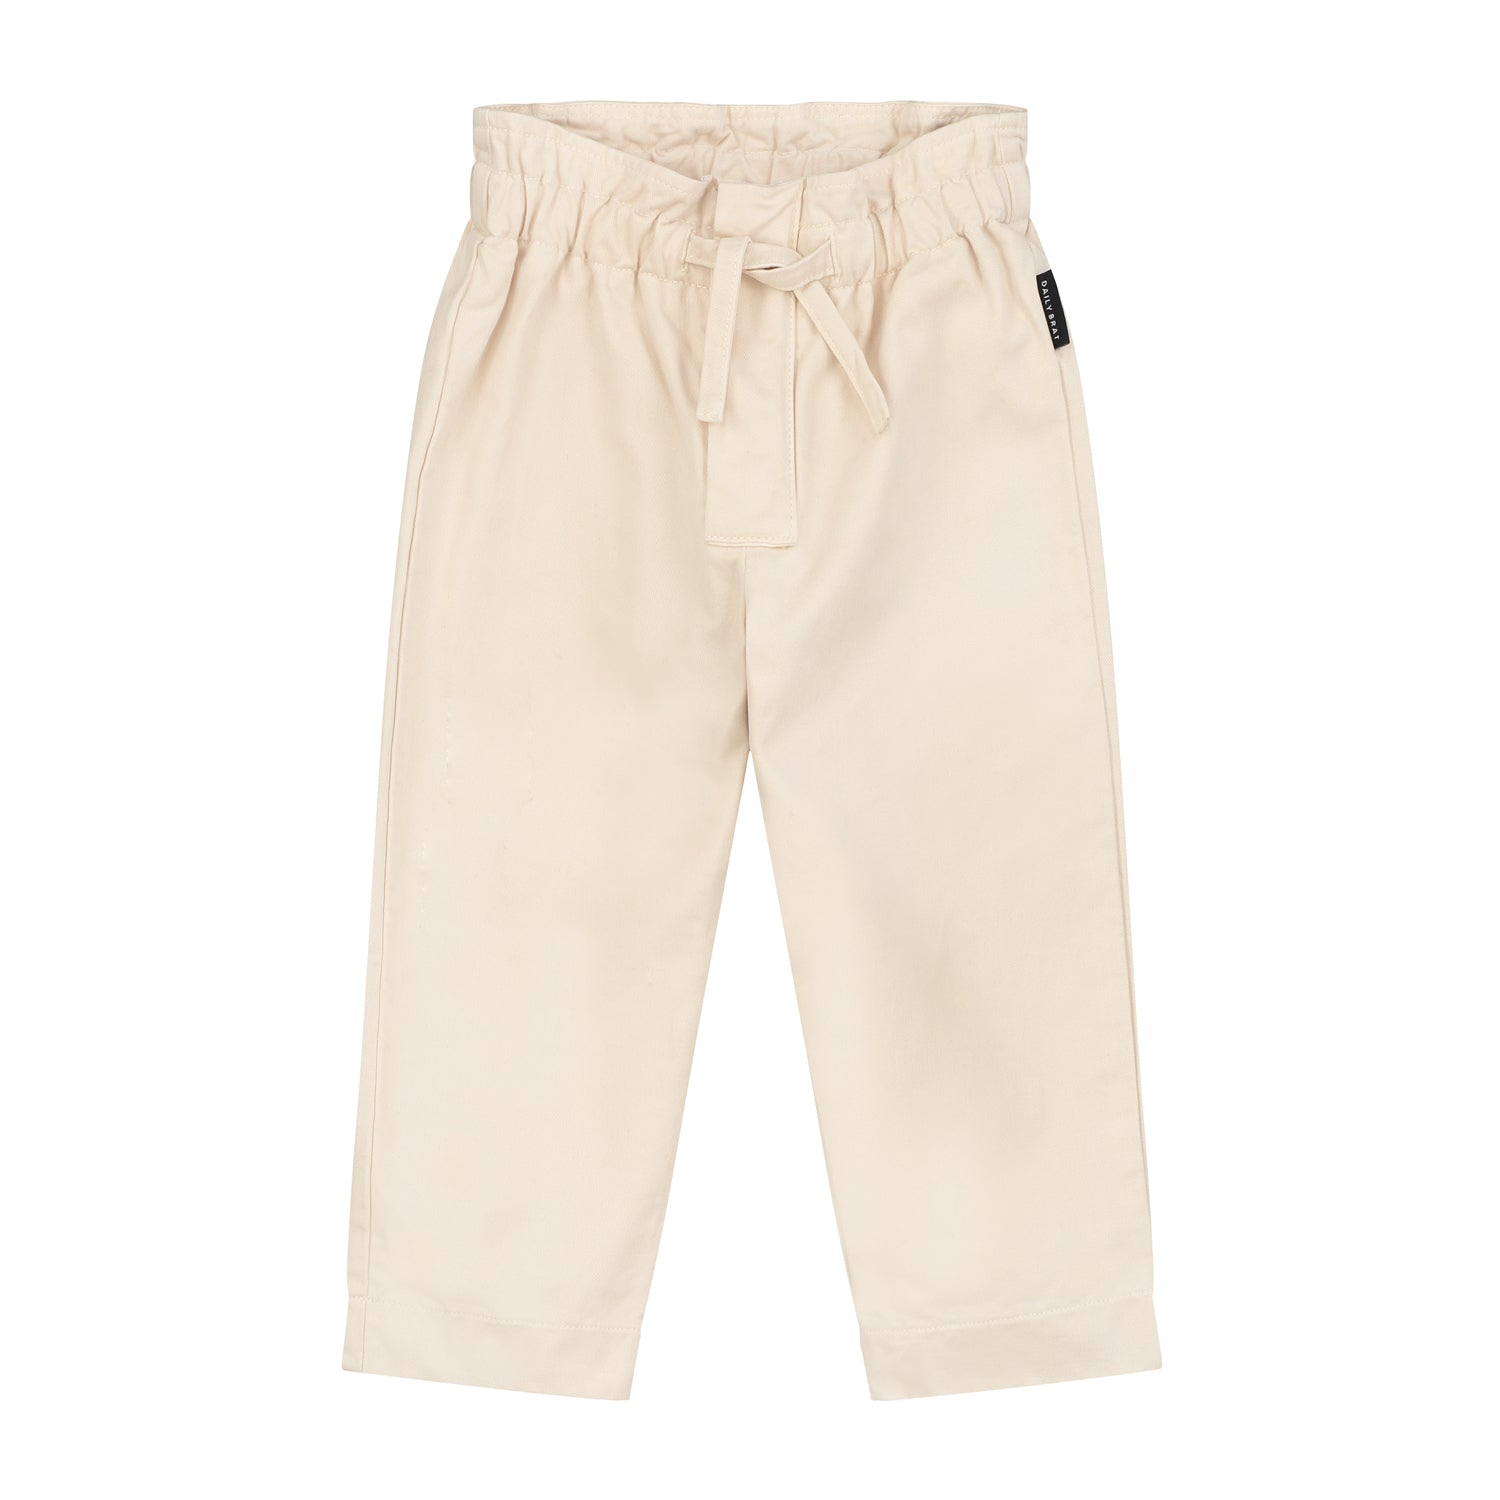 Pants Suze Paperbag Ivory